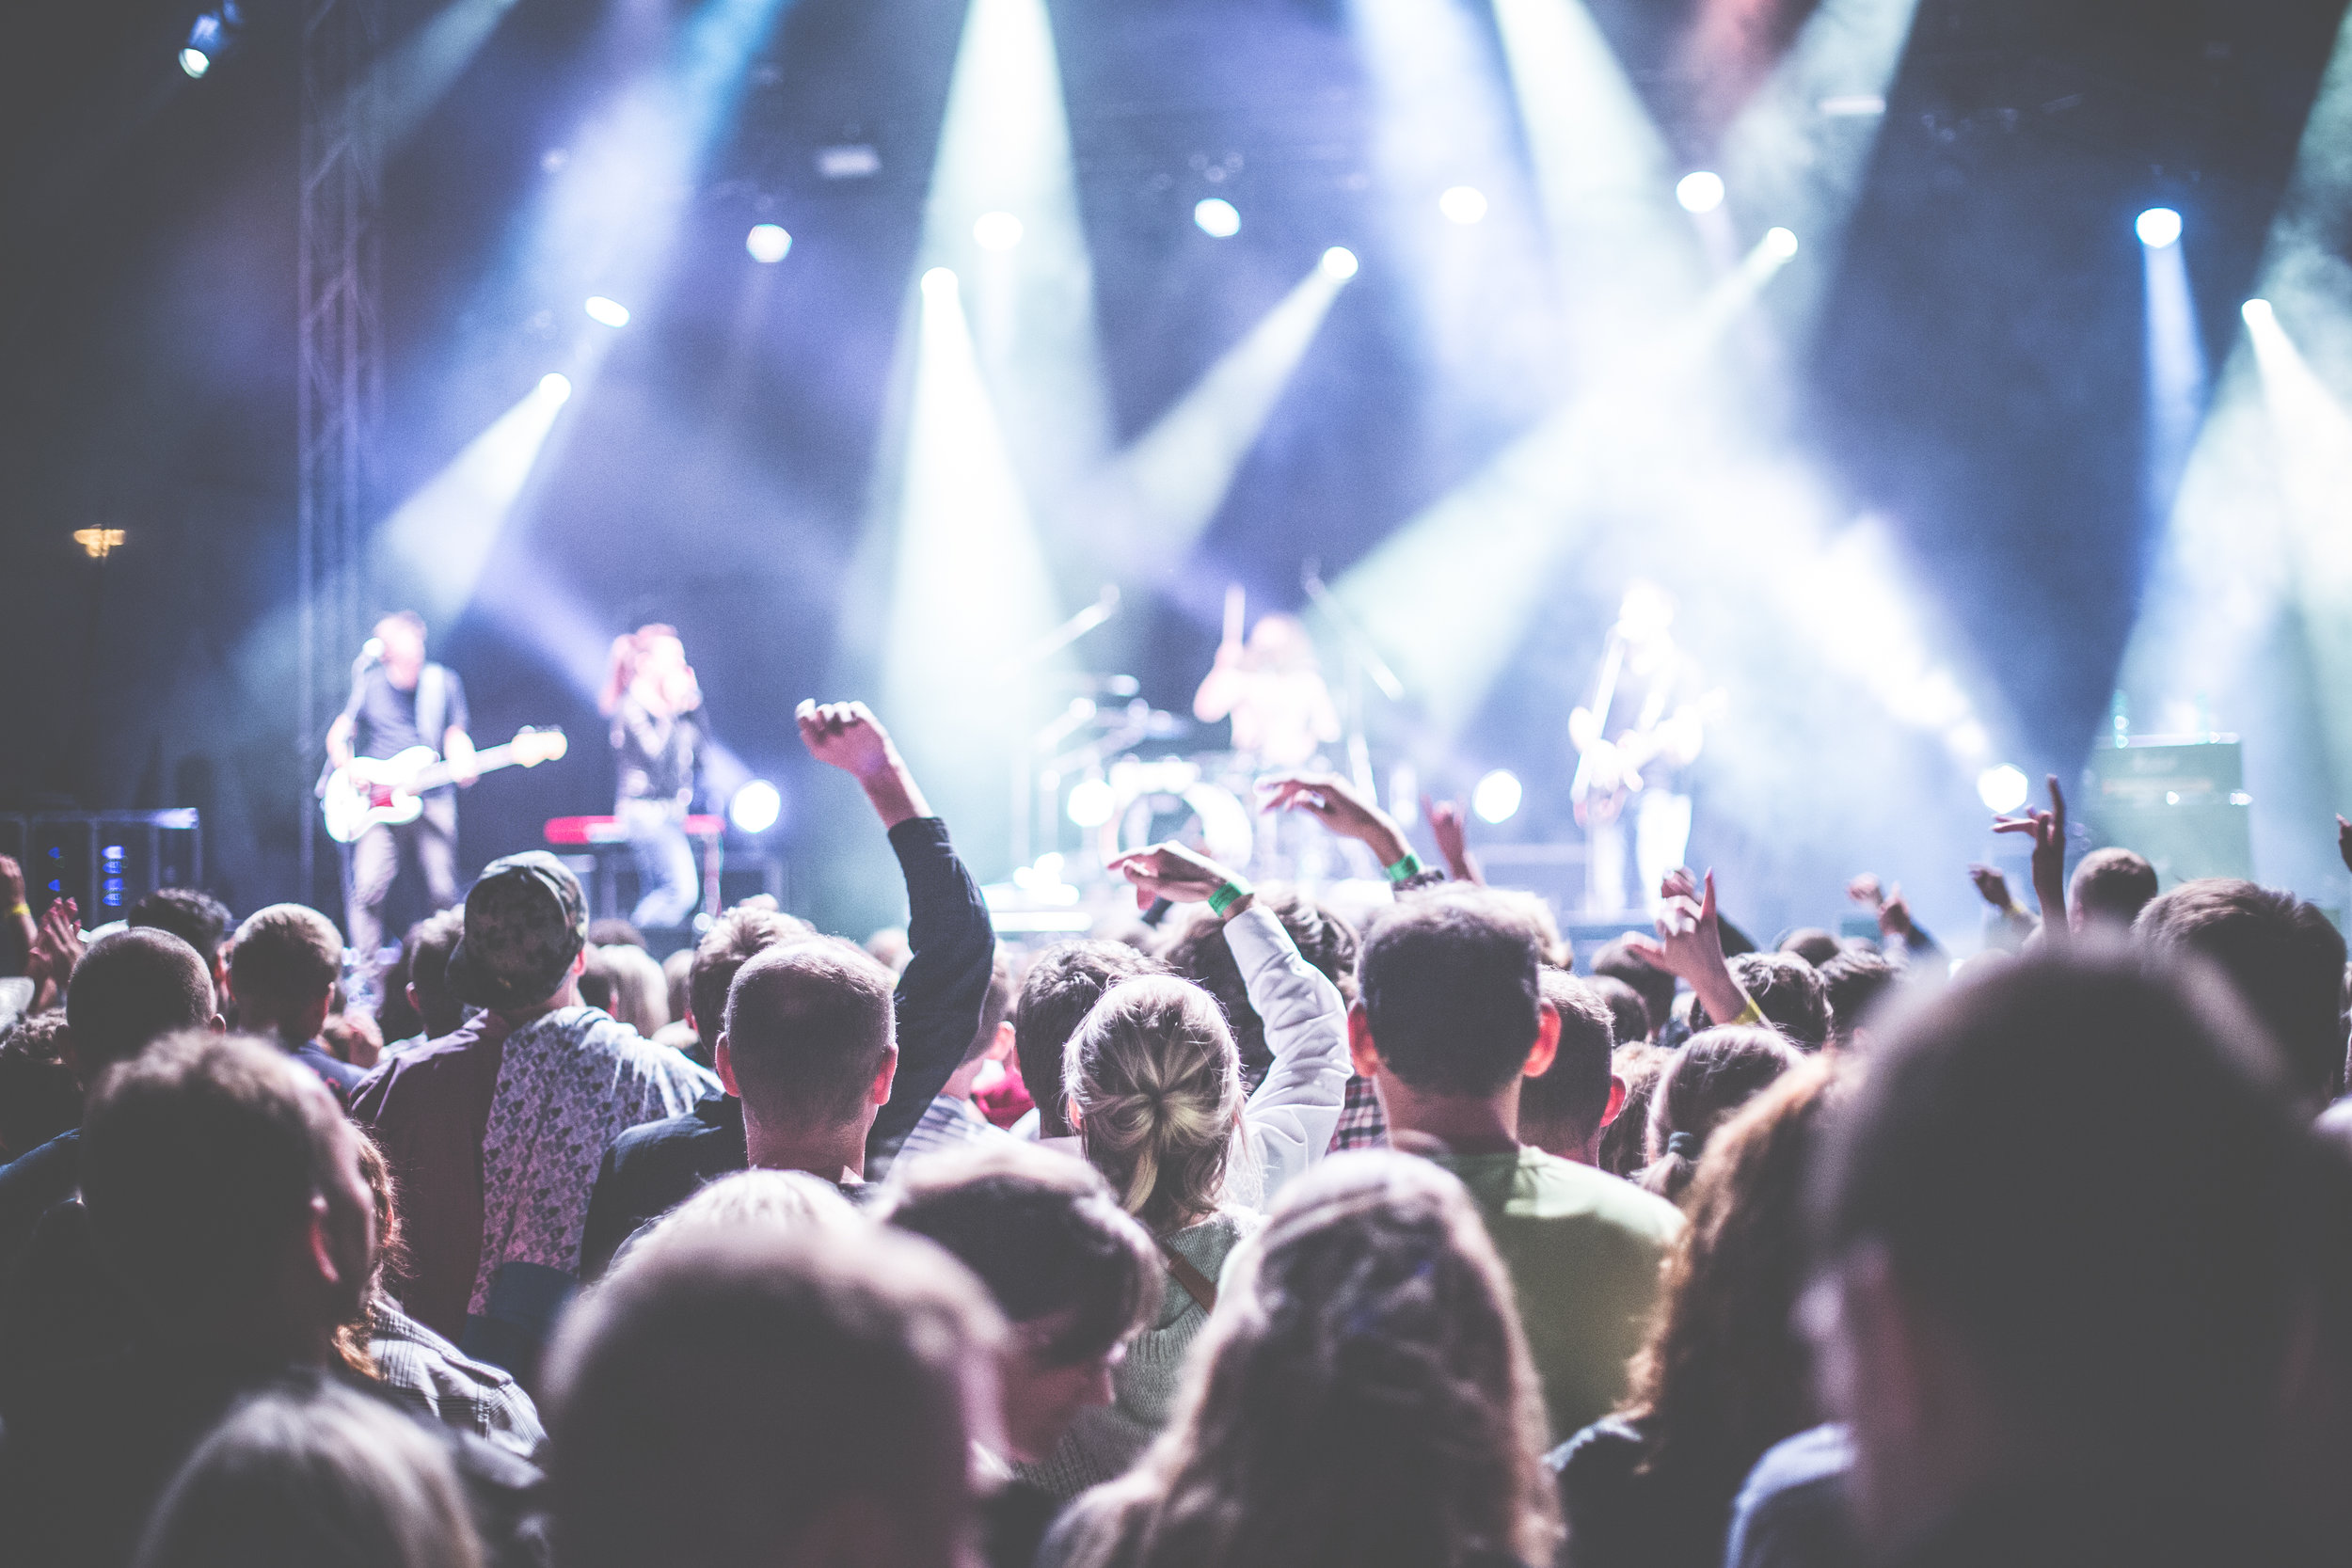 crowds-of-people-partying-at-a-live-concert-picjumbo-com.jpg